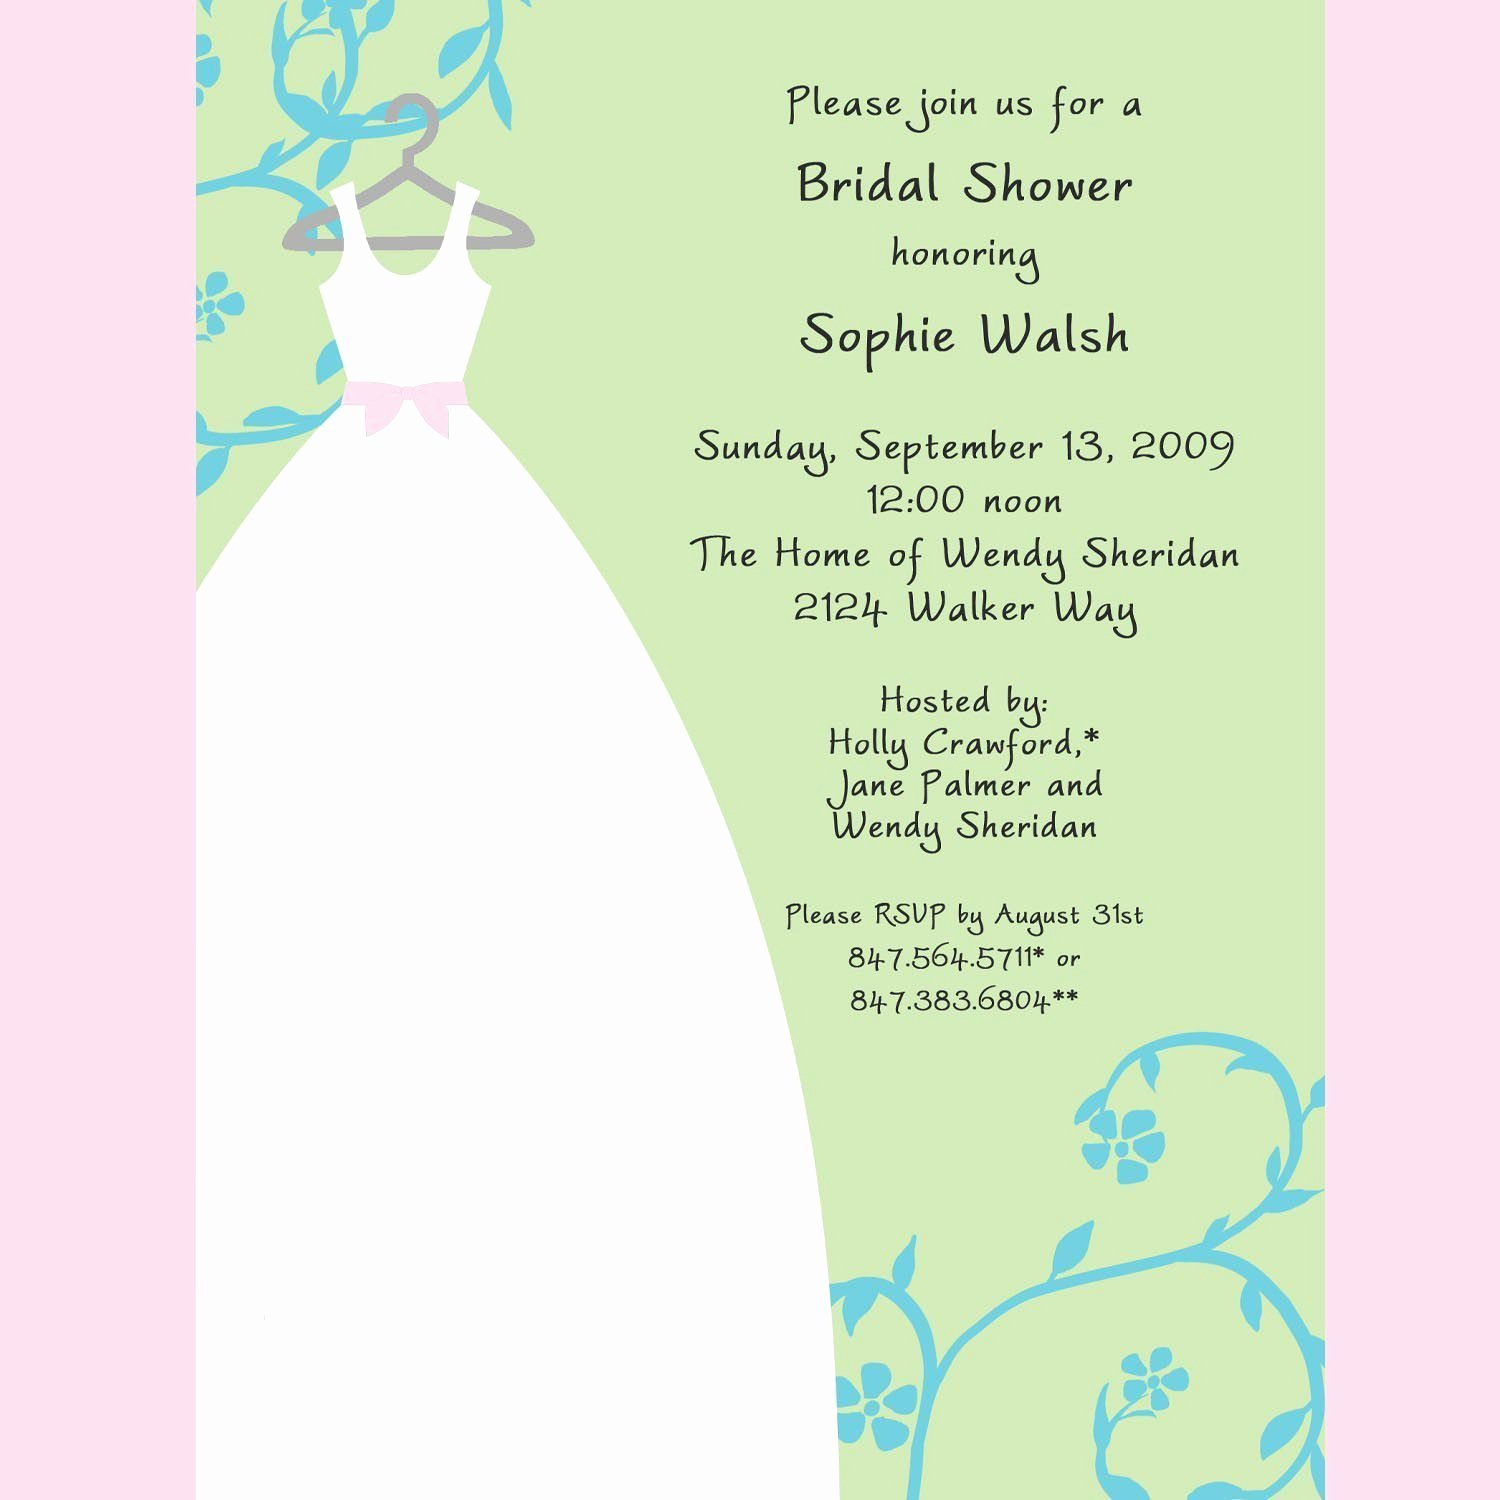 Bridal Shower Invitations Samples Bridal Shower